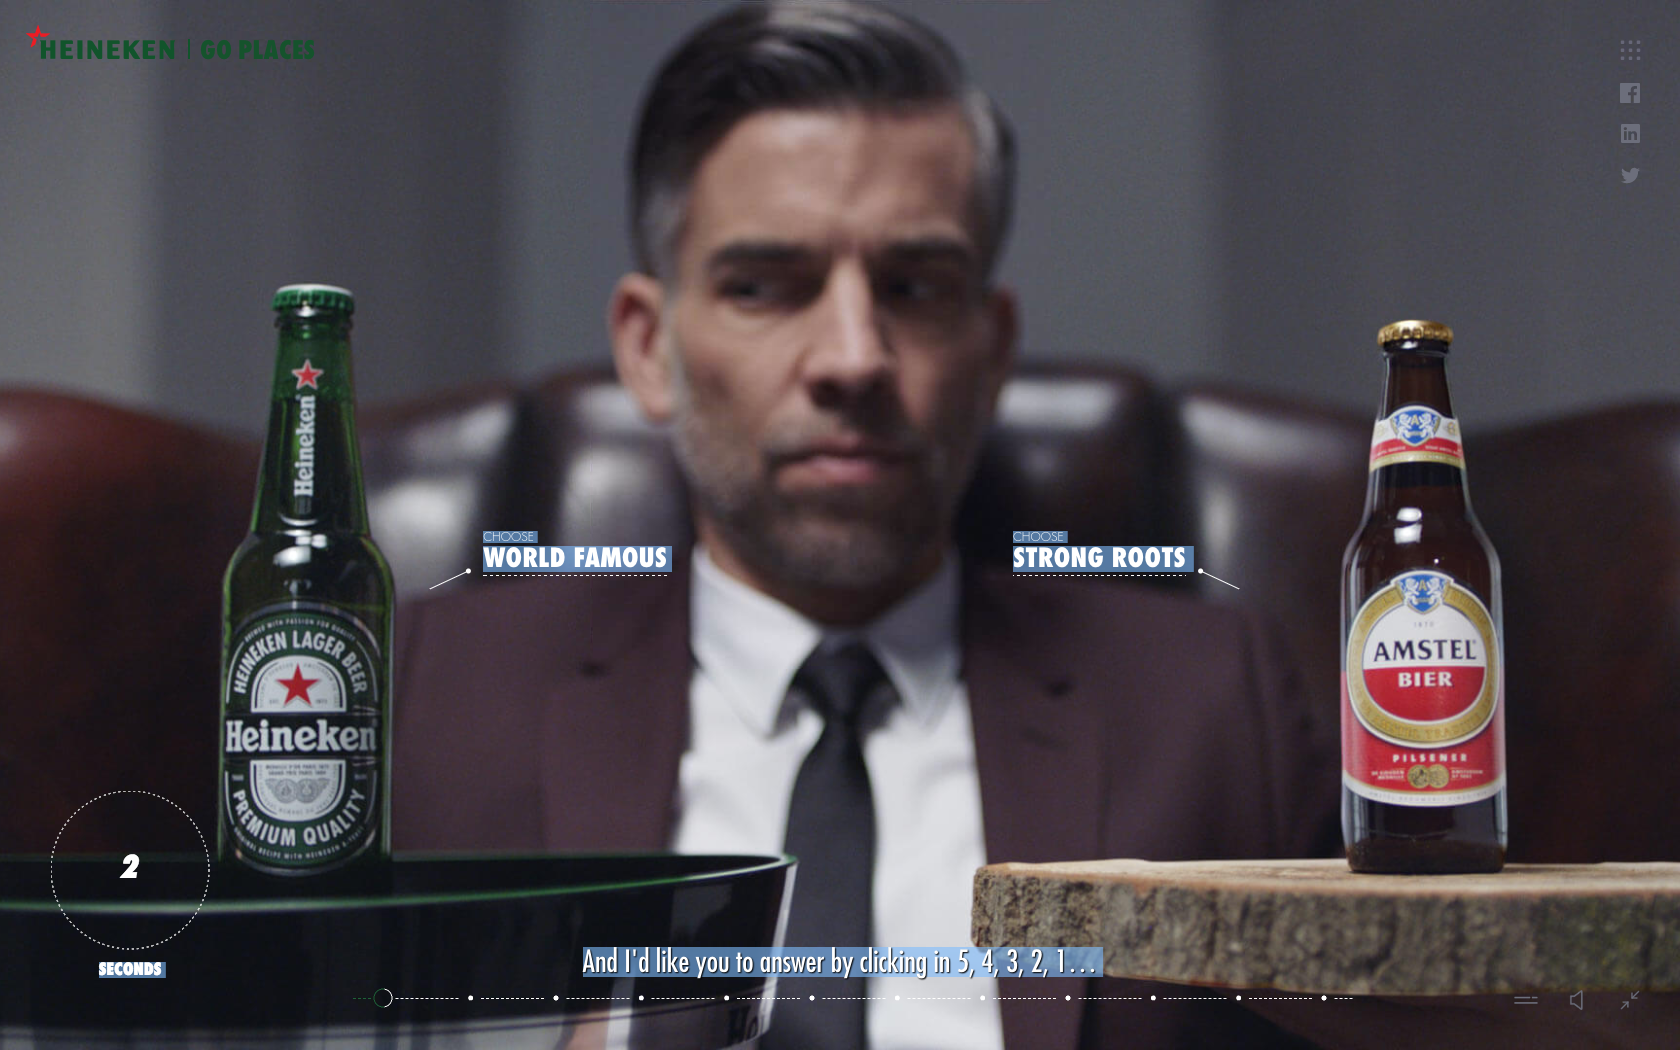 A brilliant Employer Branding campaign: well done Heineken!